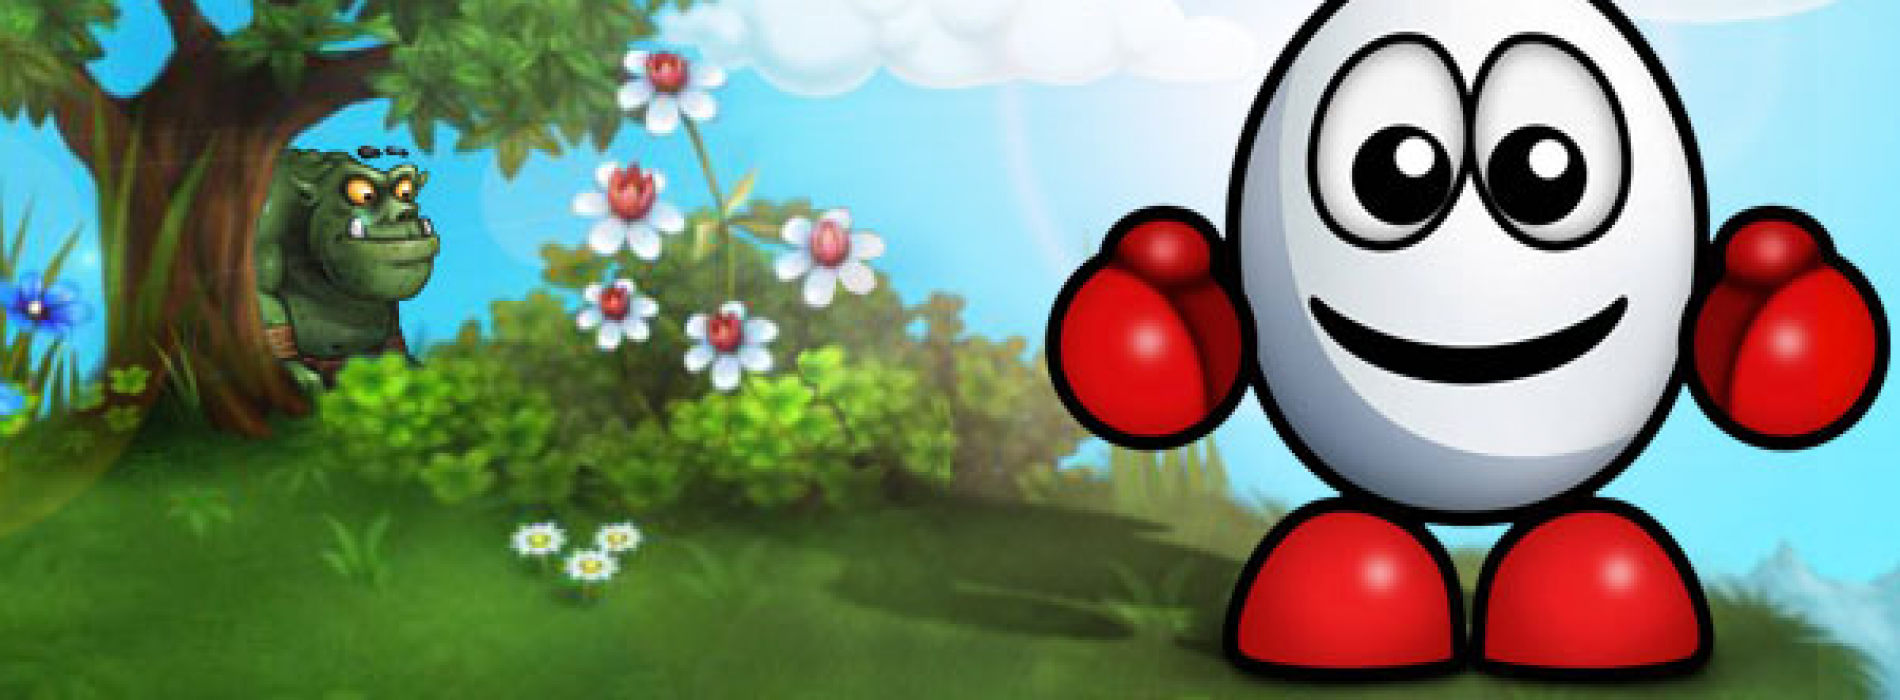 Egg-shaped hero, Dizzy, returns in remake of popular 1991 game